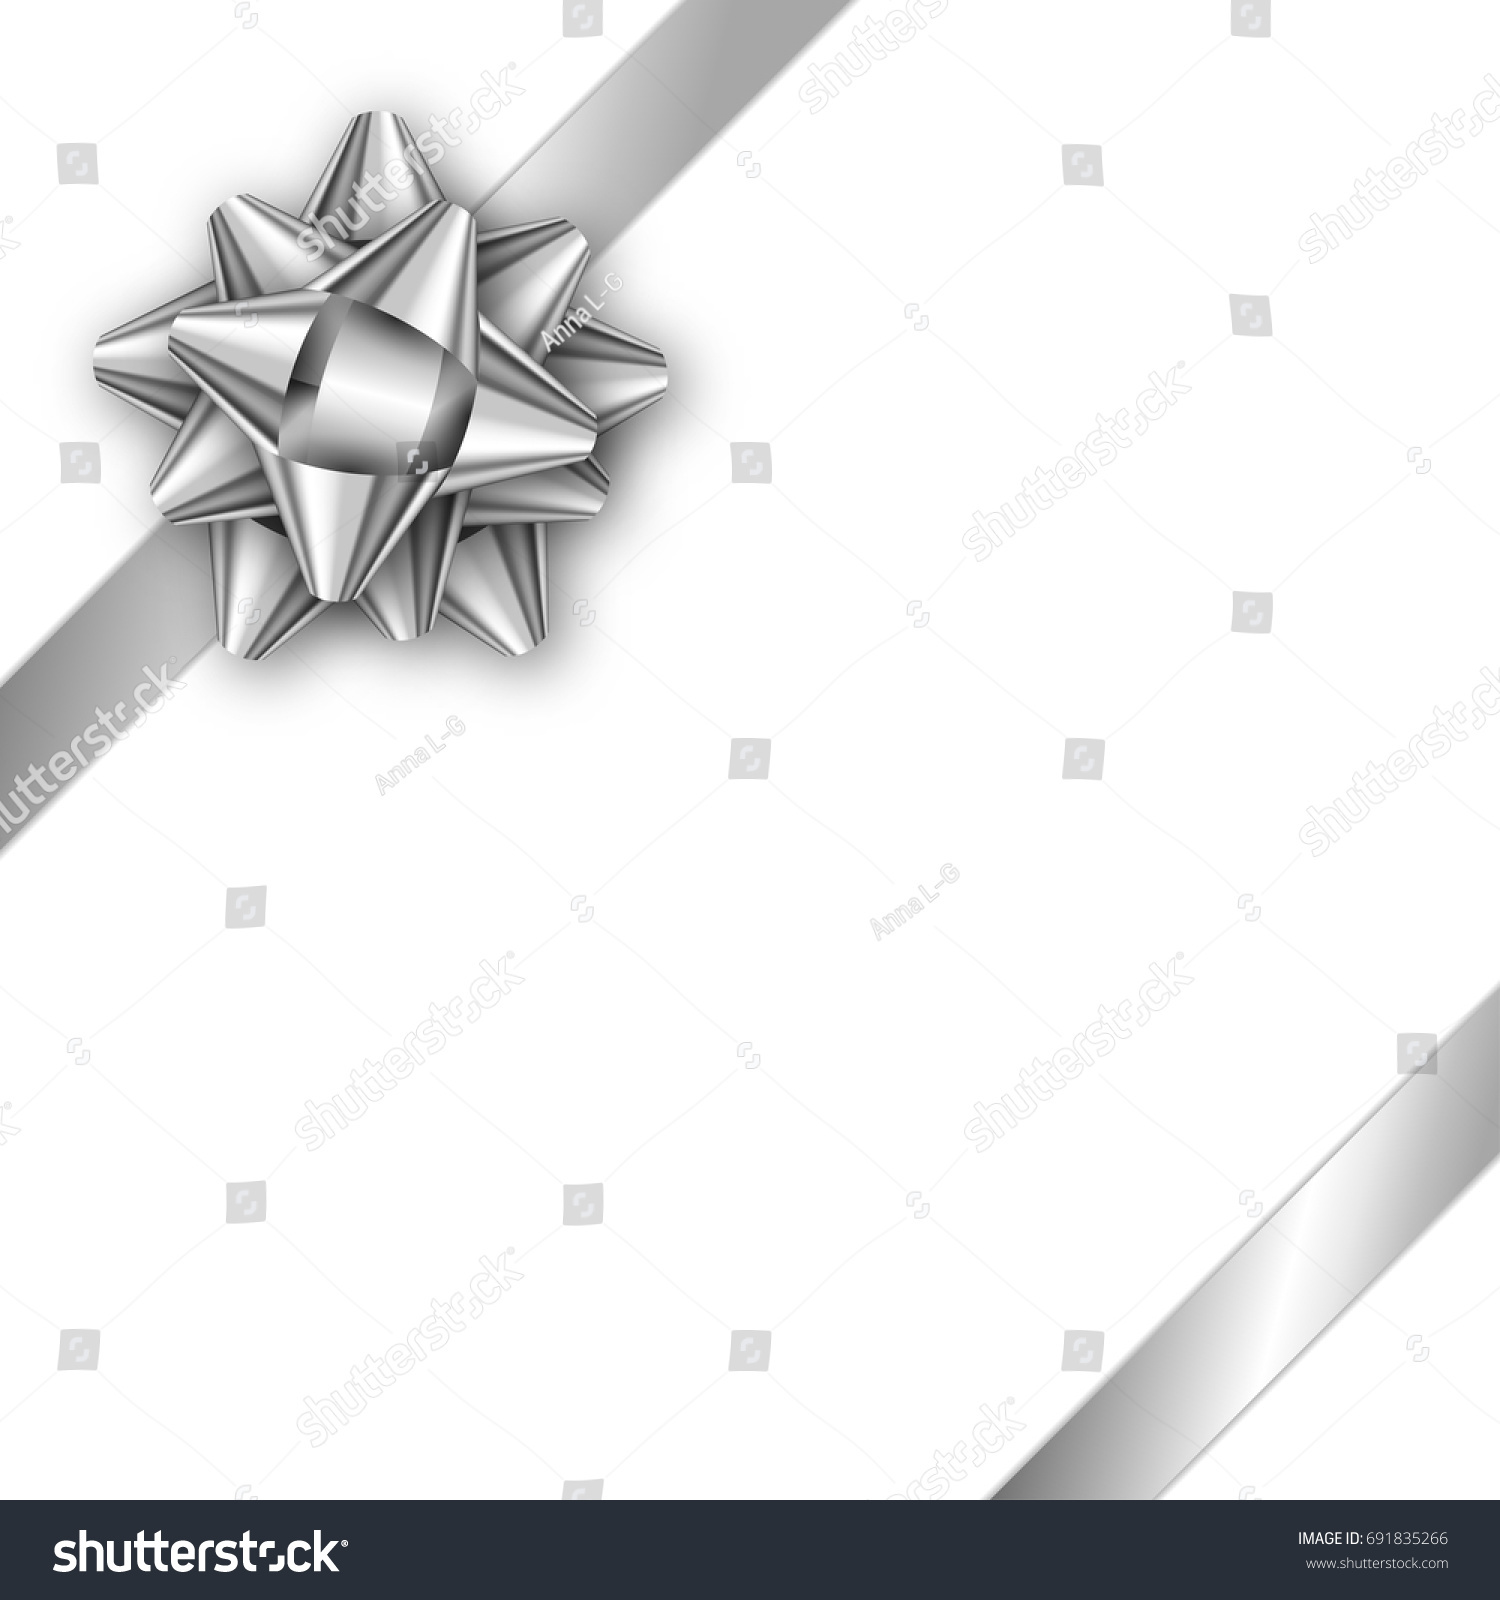 Holiday Gift Card With Silver Ribbon And Bow Template For A Business Banner